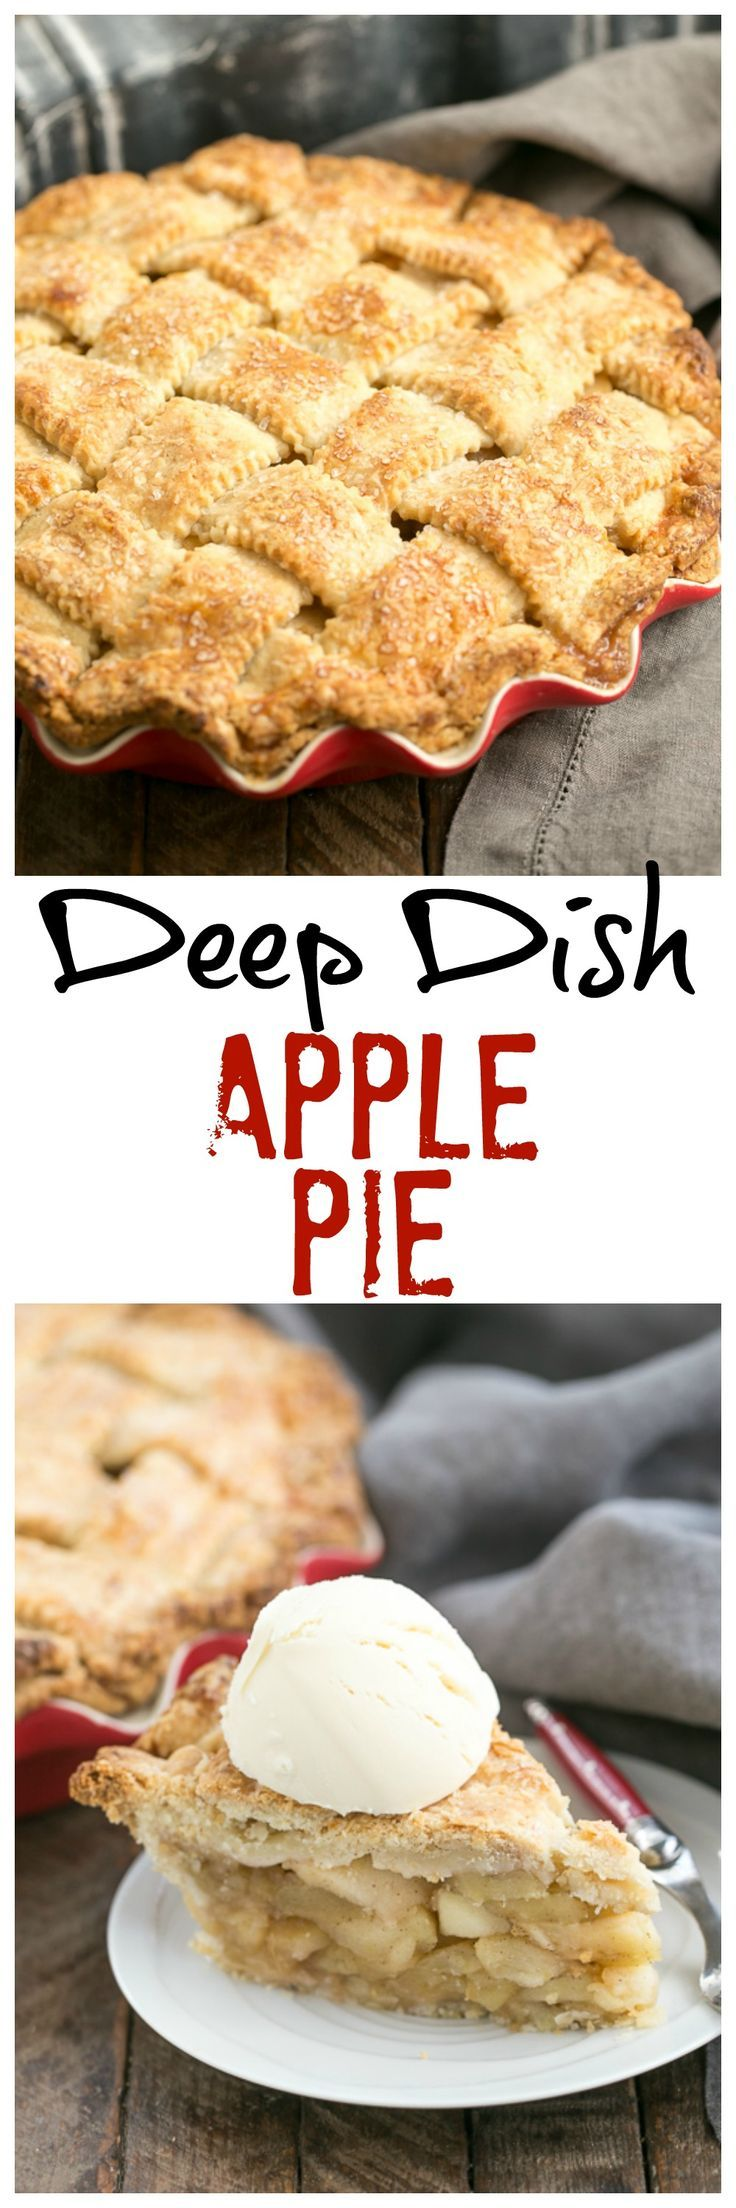 Deep Dish Apple Pie   Packed full of precooked apples makes for a perfect autumnal pie! @lizzydo